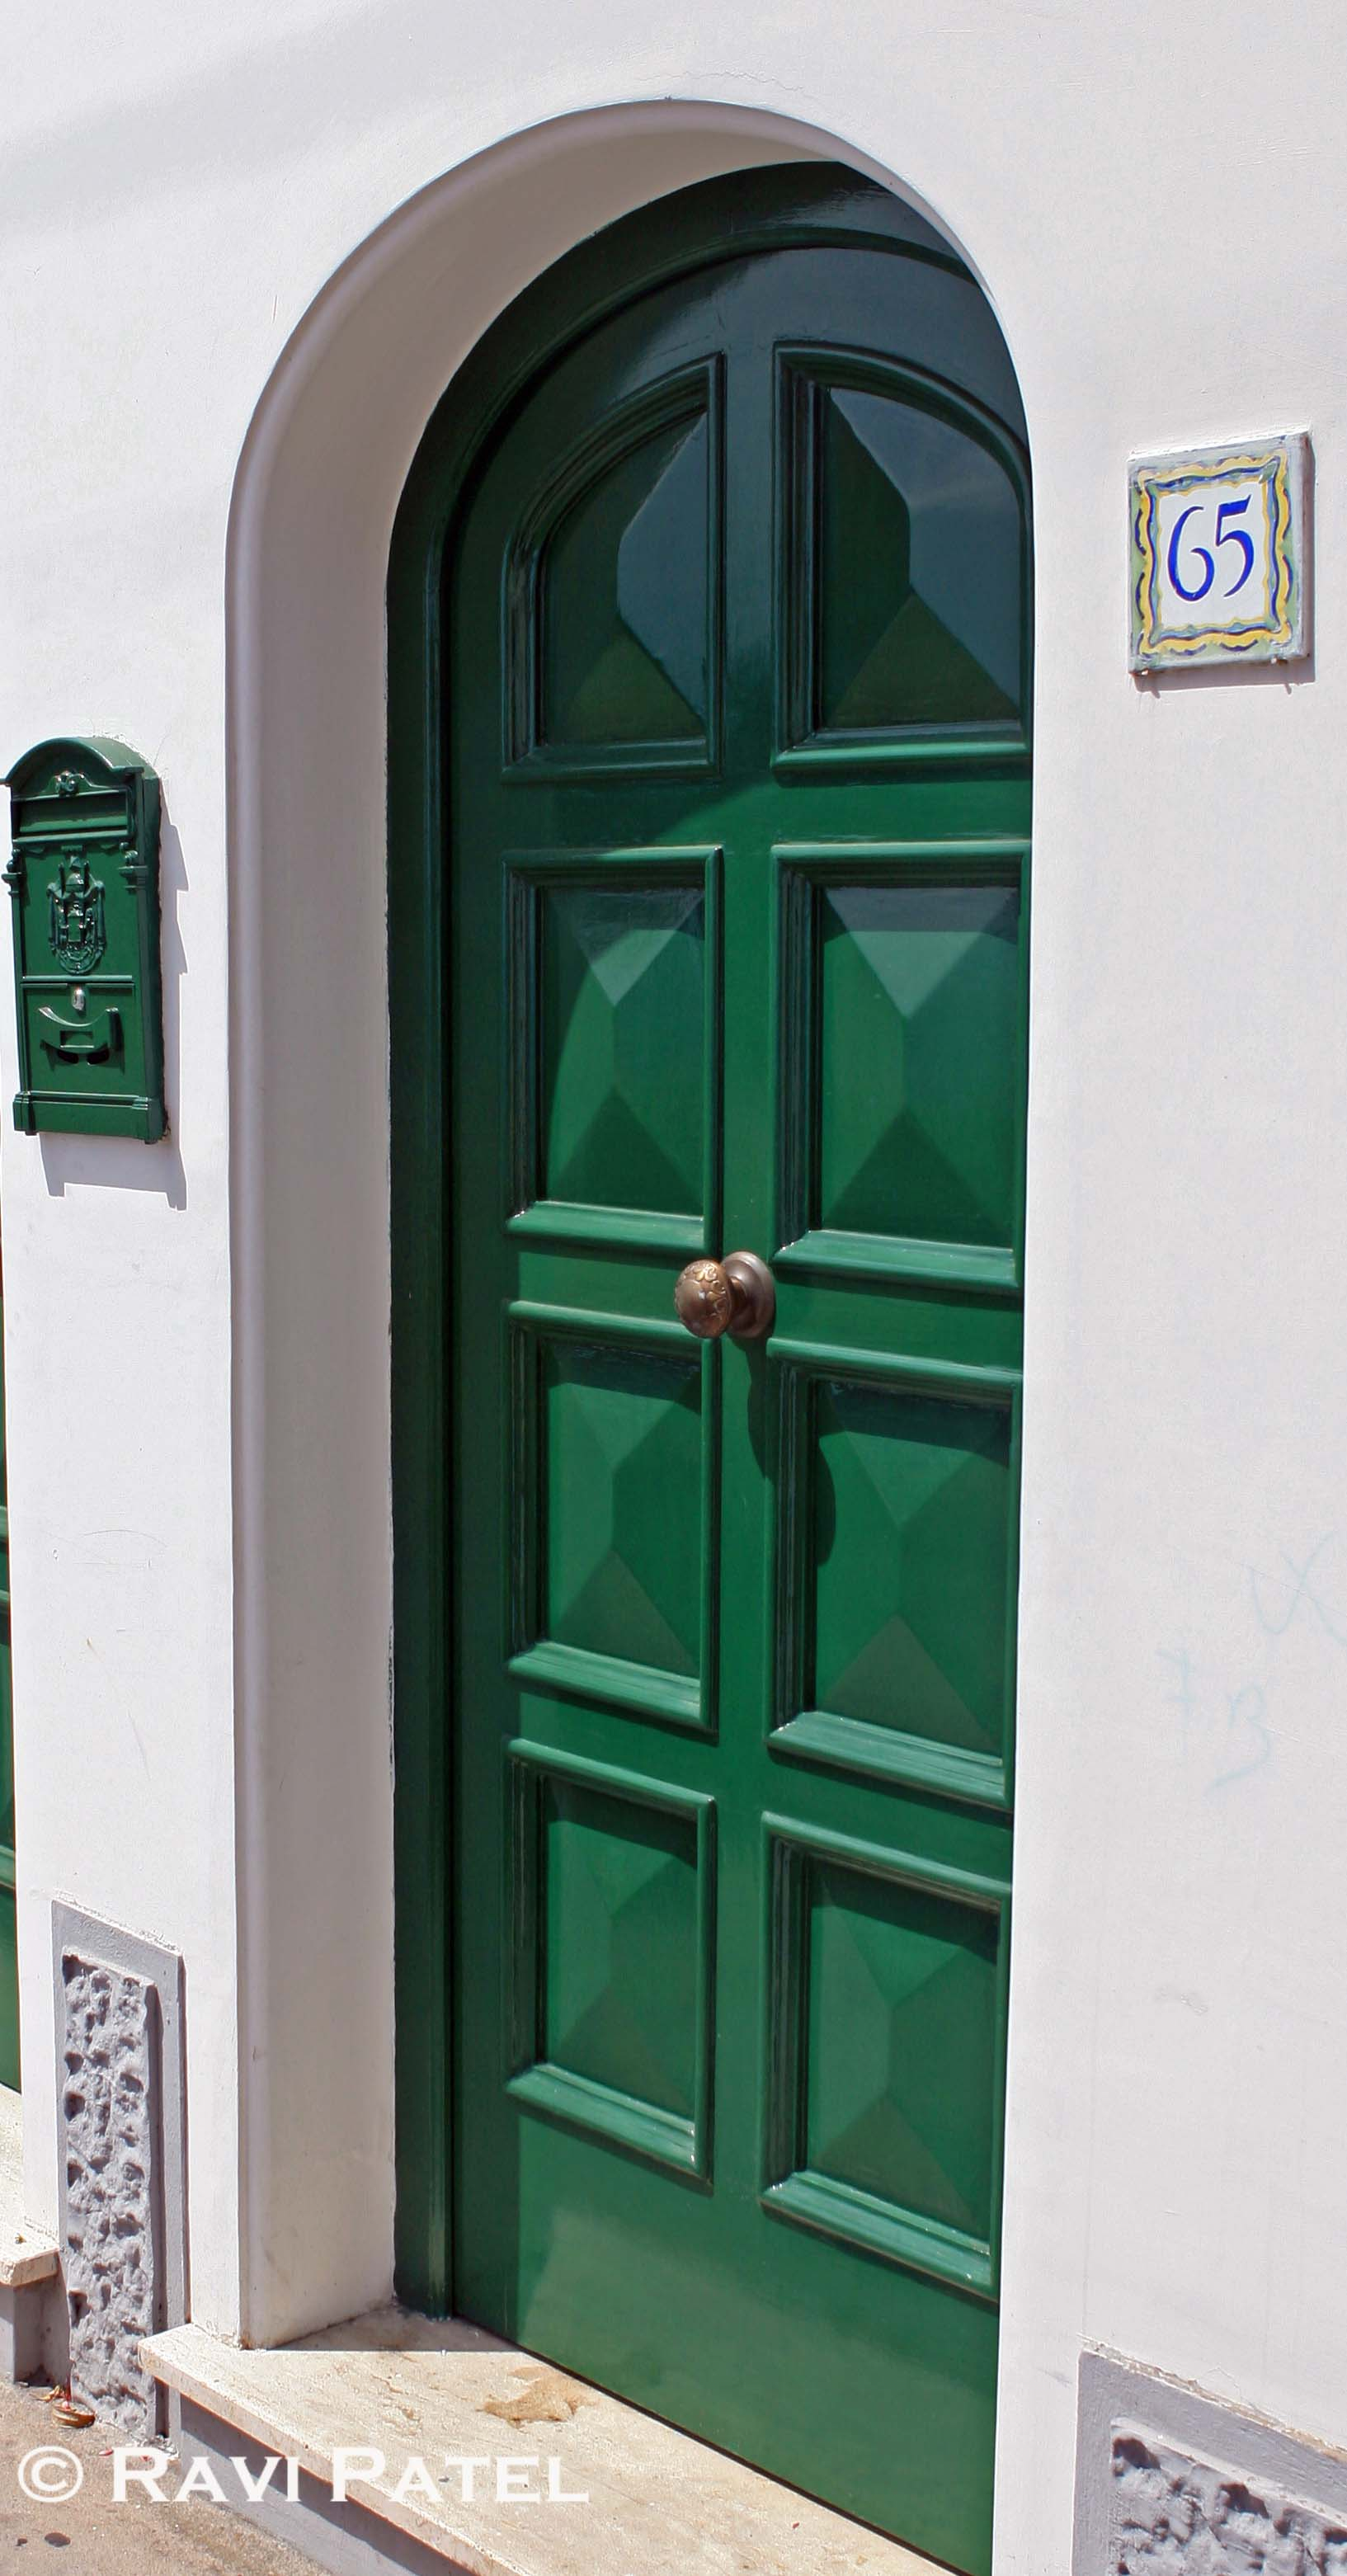 The Green Door | Photos by Ravi